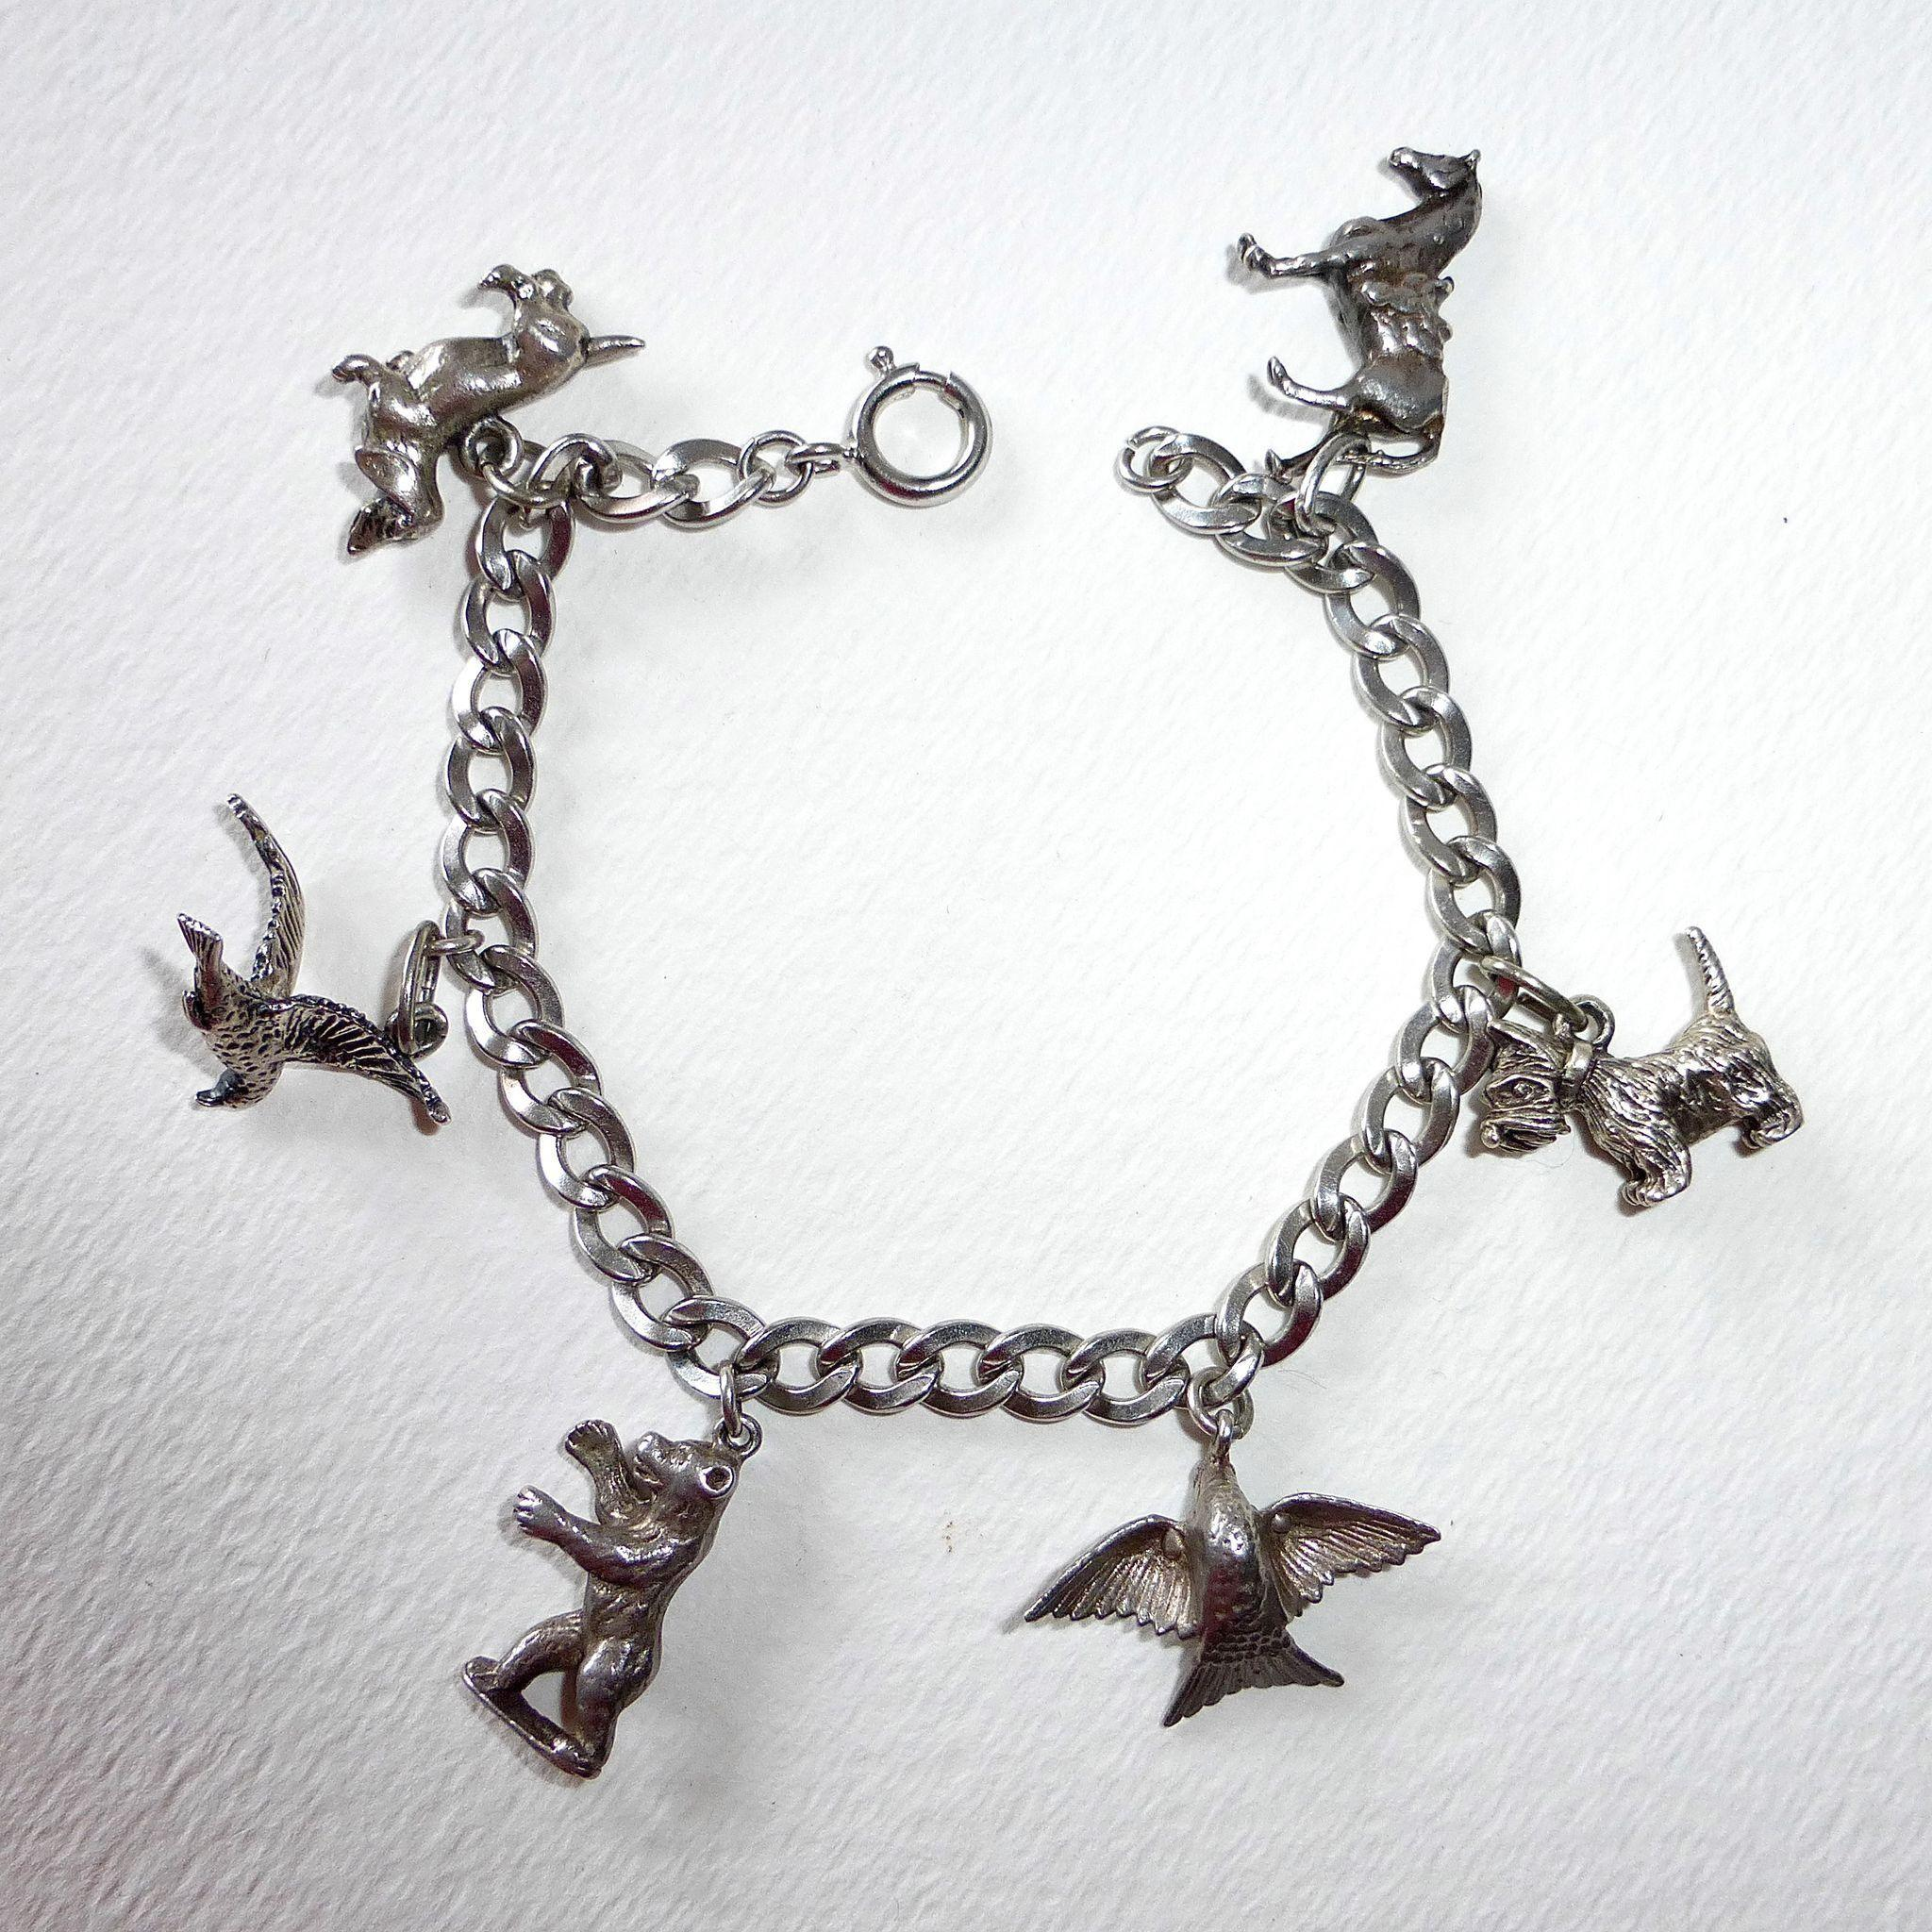 beau sterling silver animal charm bracelet from bejewelled on ruby